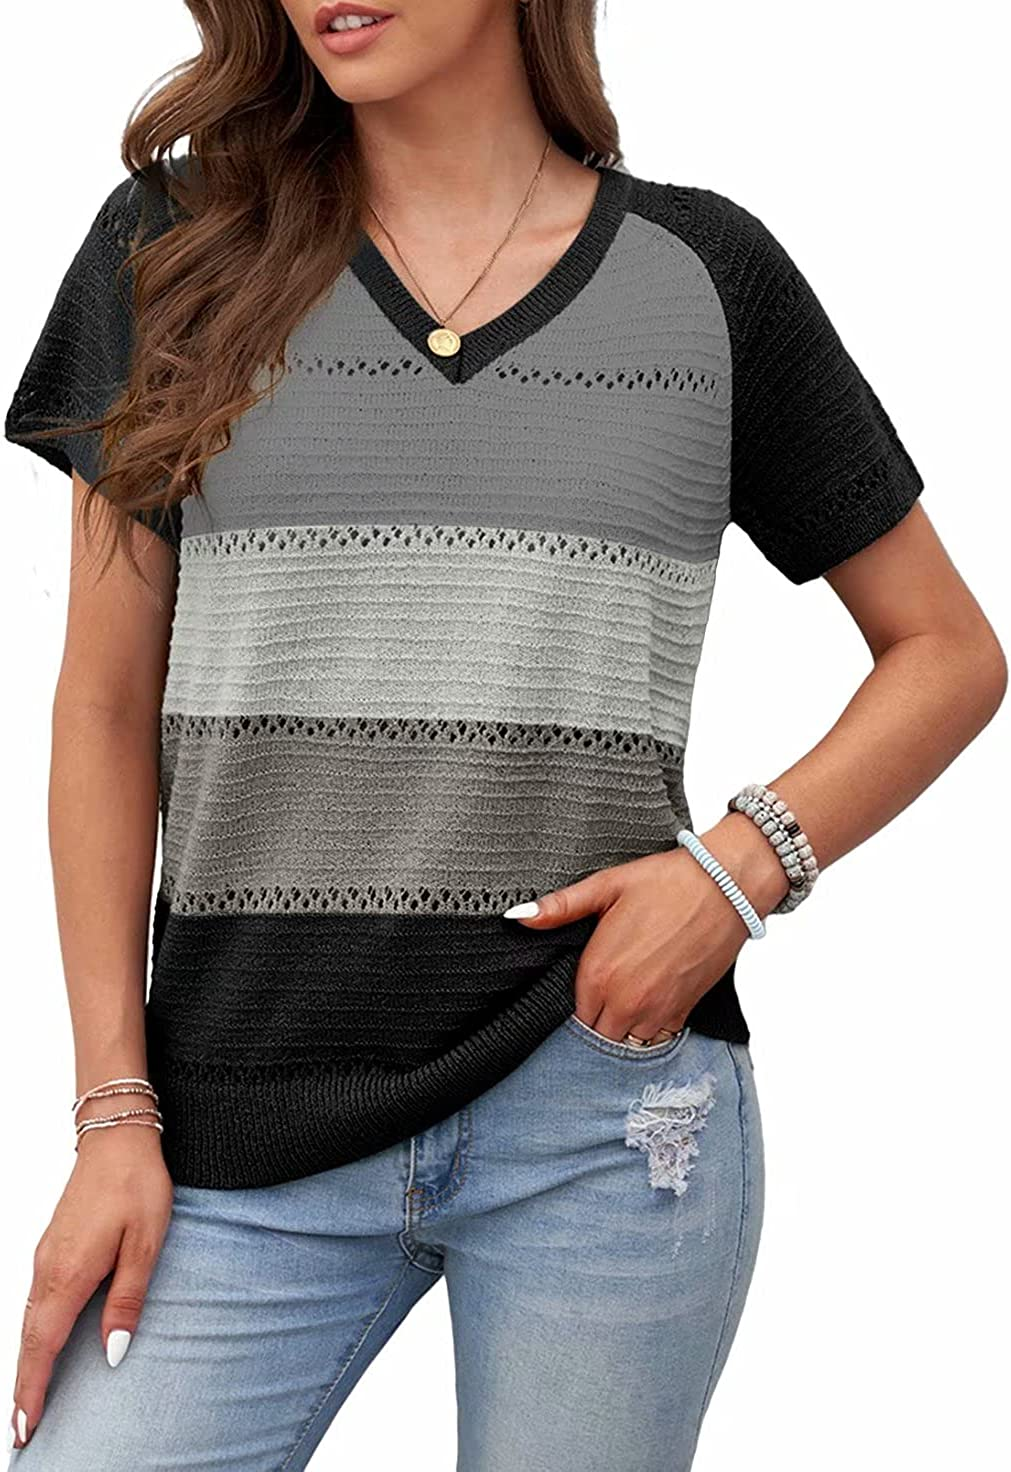 BLENCOT Womens Summer Short Sleeve Pullover Tops V Neck Color Block Tunics Casual Loose Fit Knit Blouses Shirts